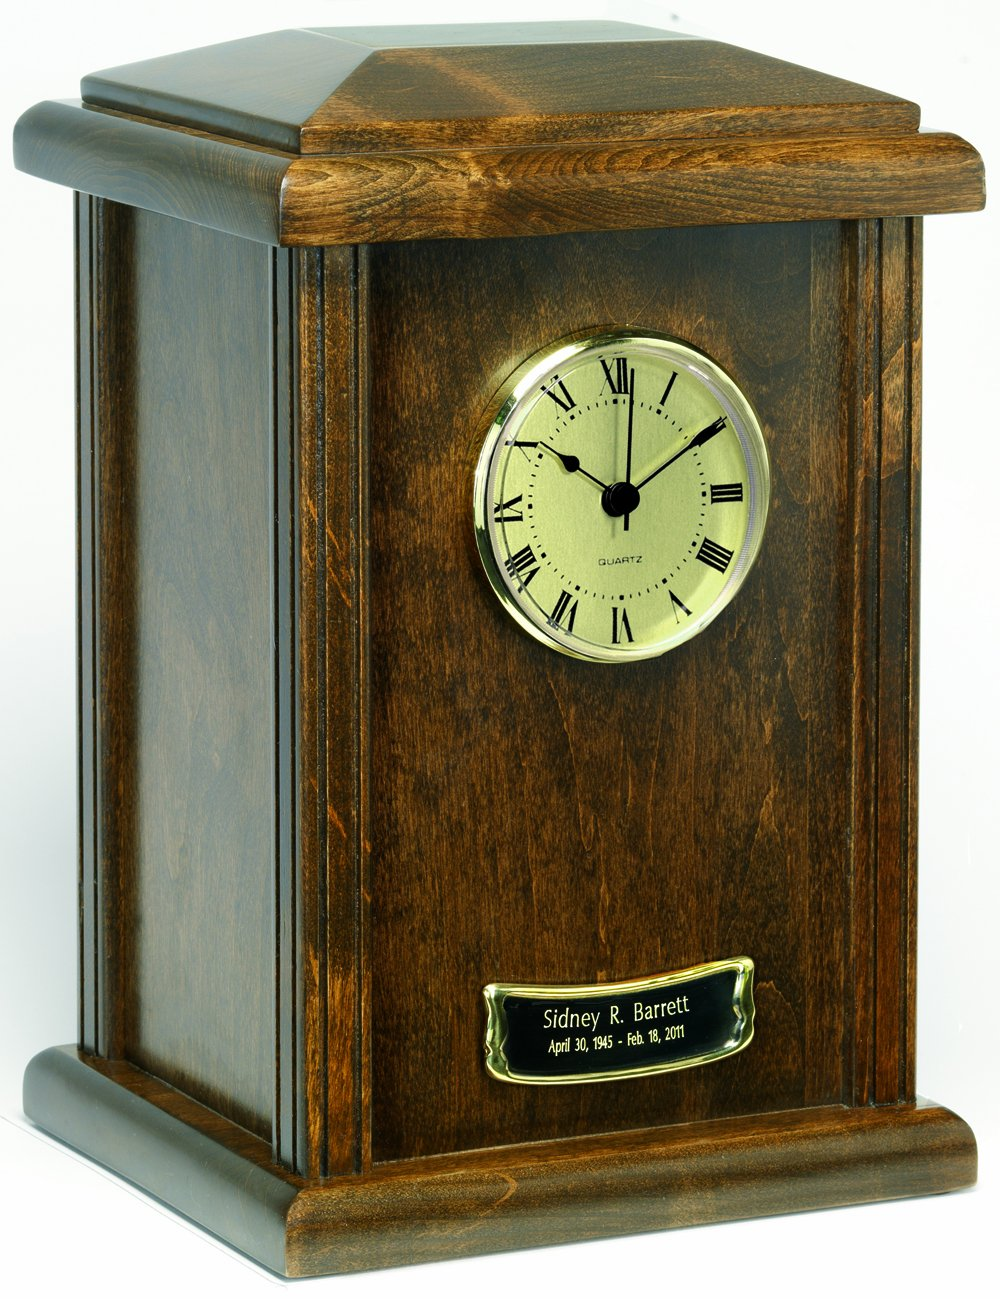 Star Legacy Natural Wood Chestnut Clock Urn, Chestnut, Large/Adult